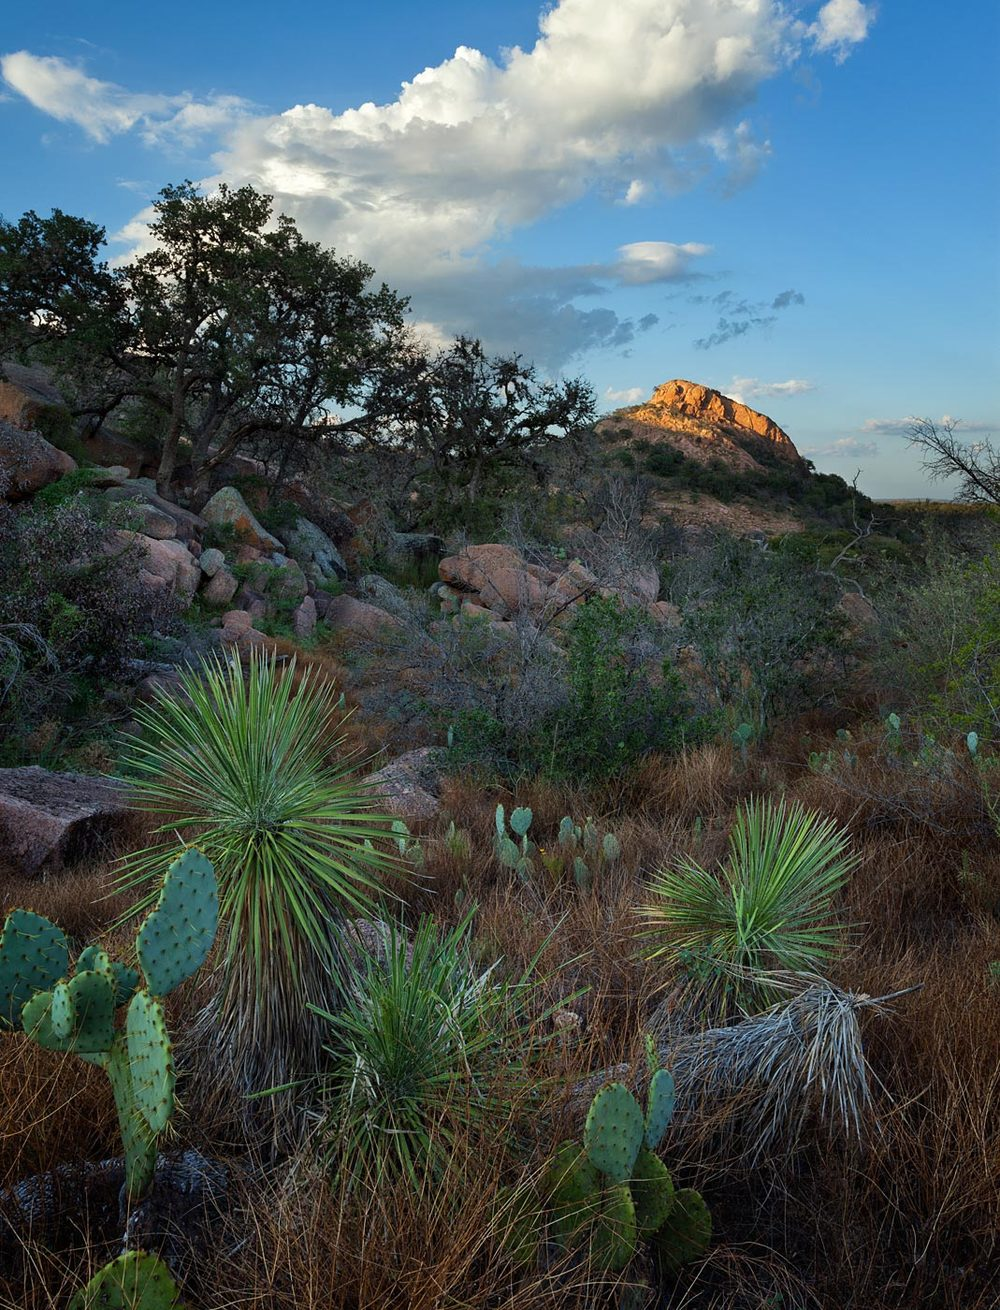 Enchanted-Rock-ABP-Turkey-Peak.jpg